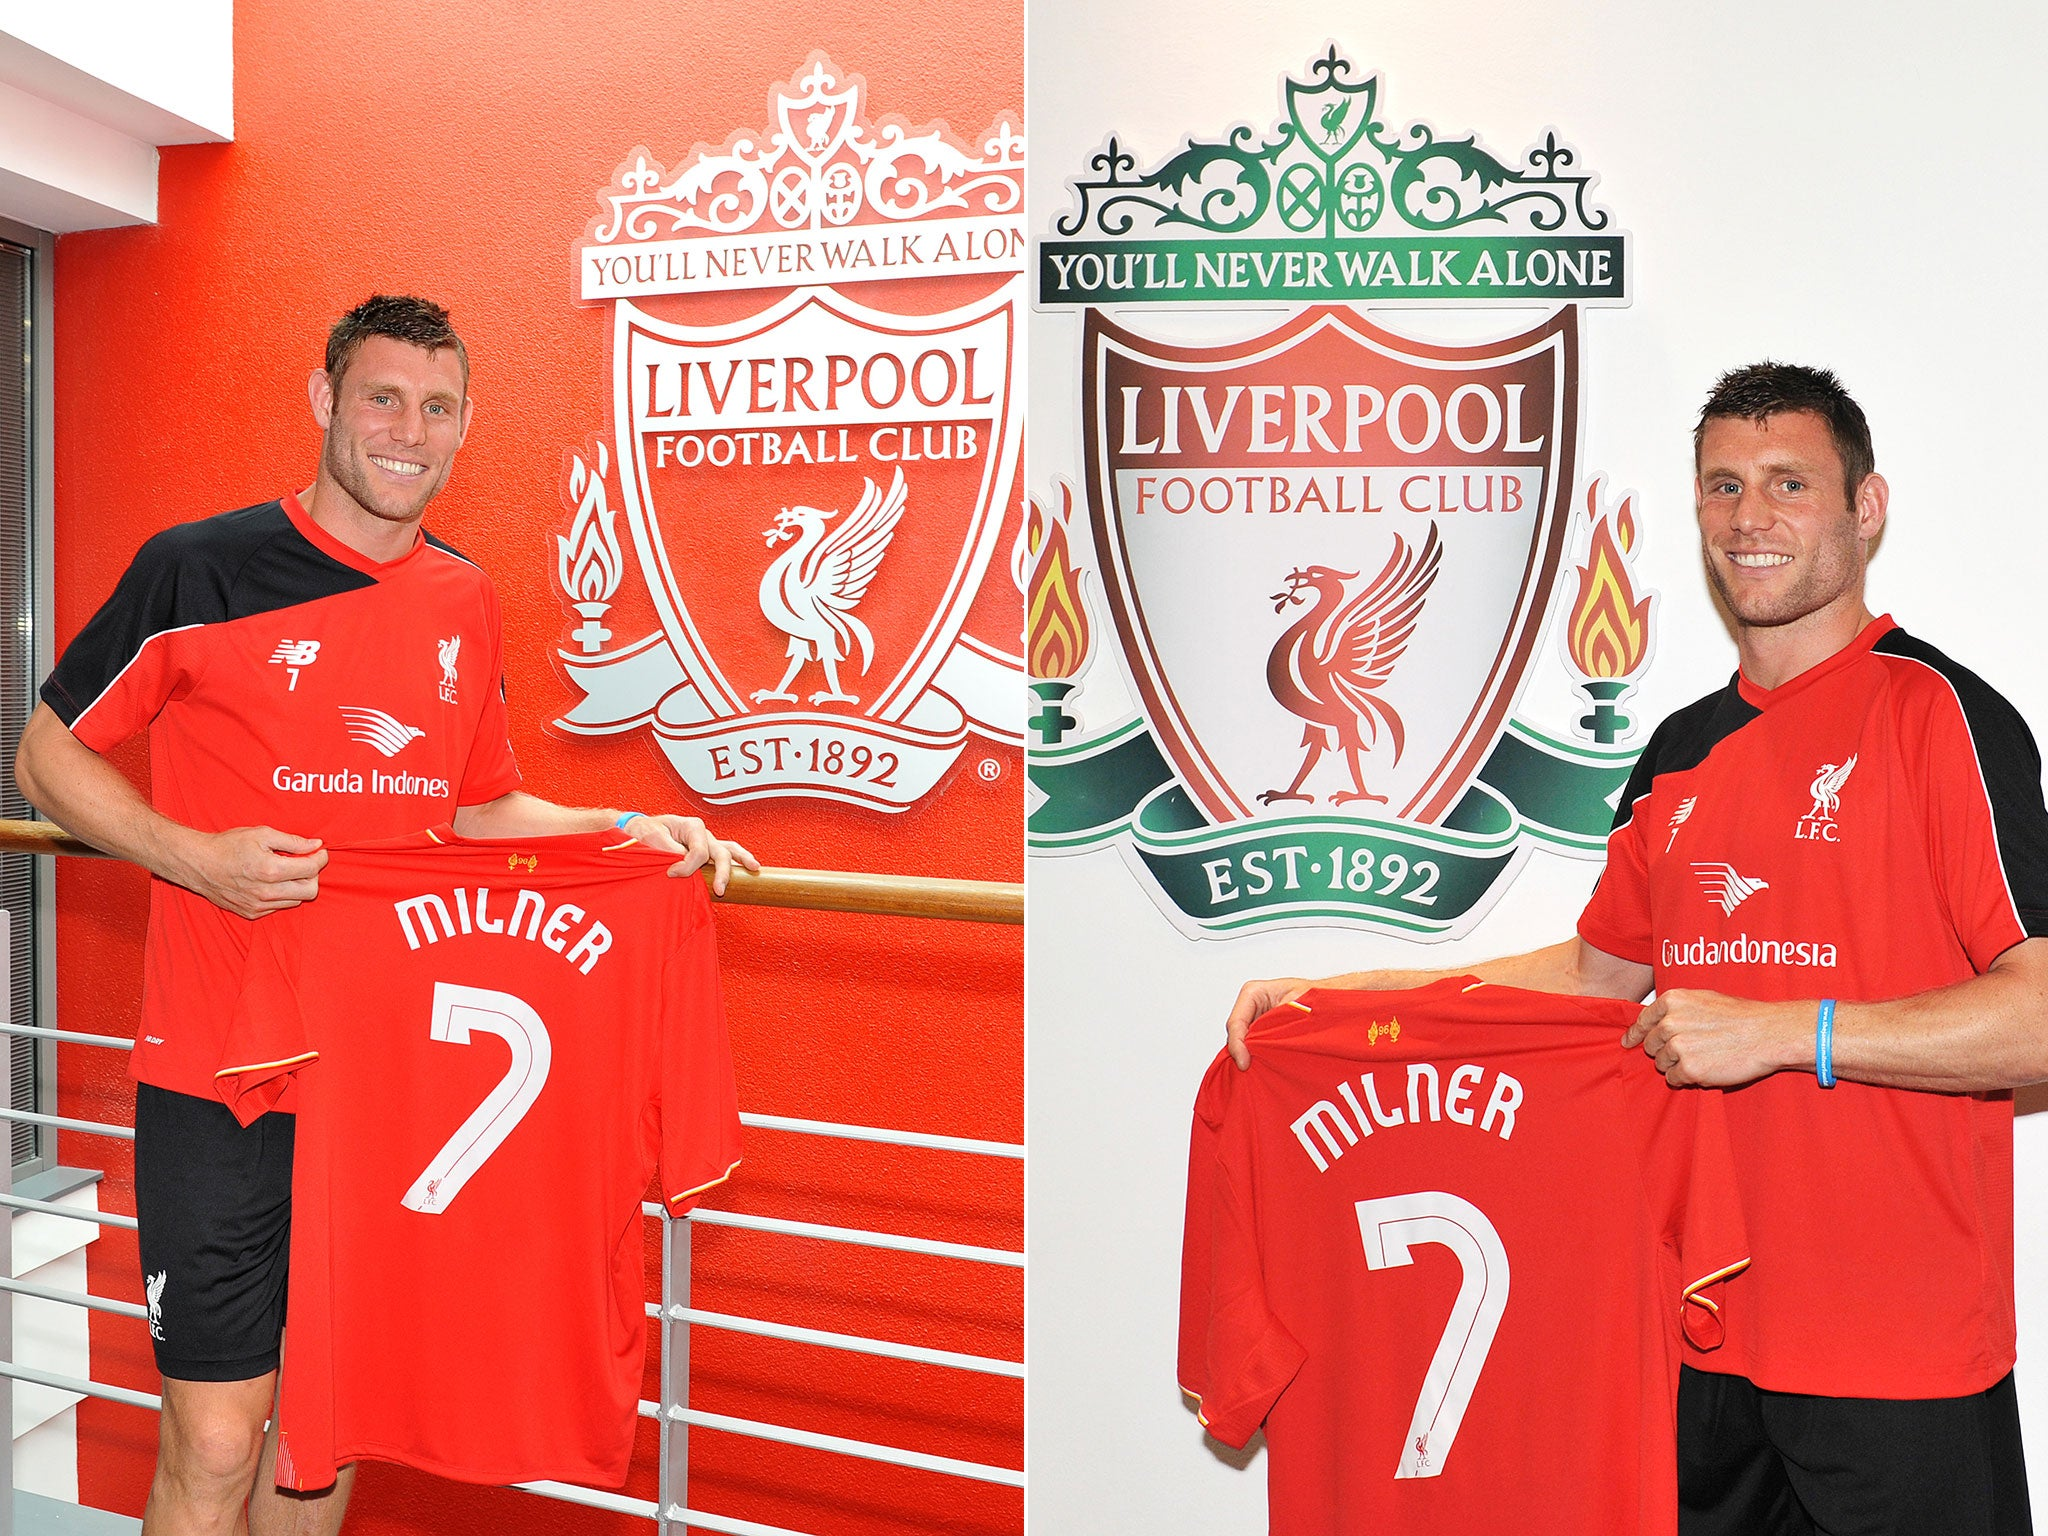 421e3b065 ... James Milner officially unveiled by Liverpool - complete with number 7  jersey The Independent ...